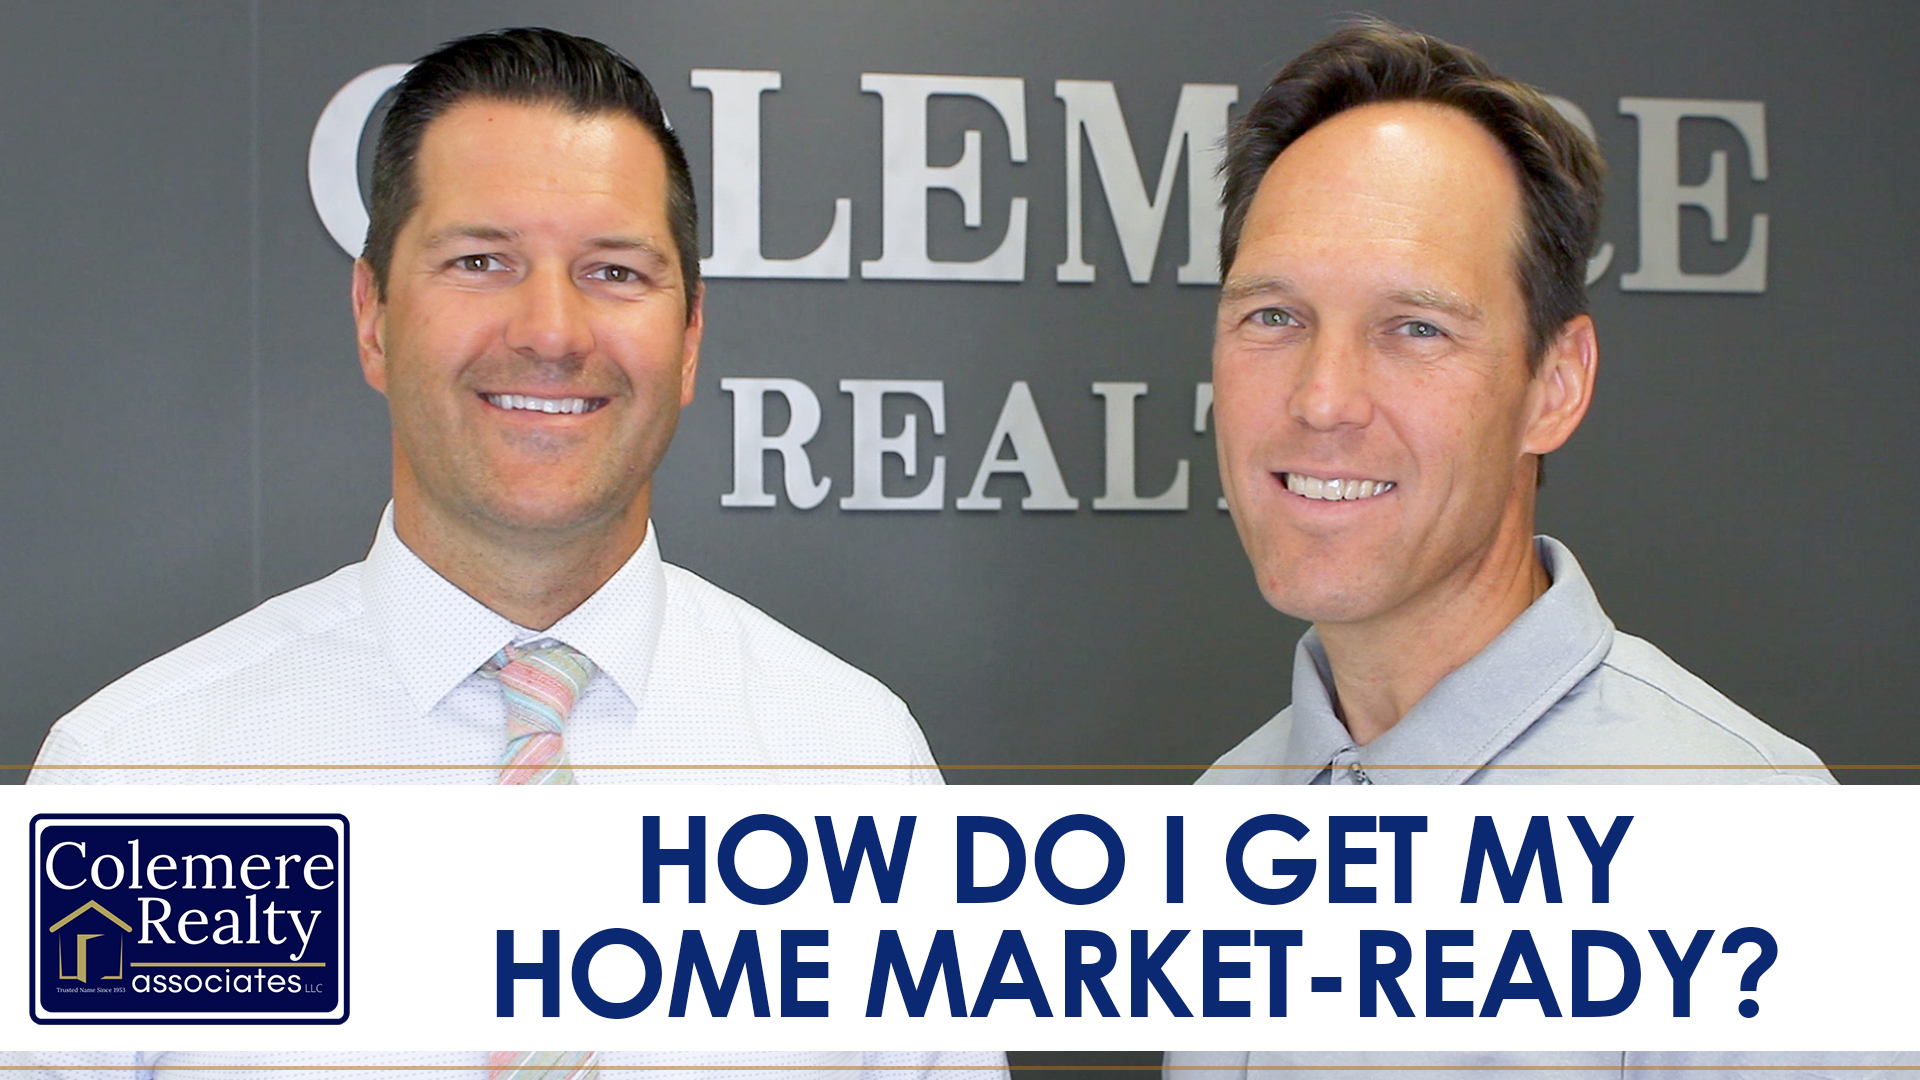 How Do I Prepare My Home for the Market?